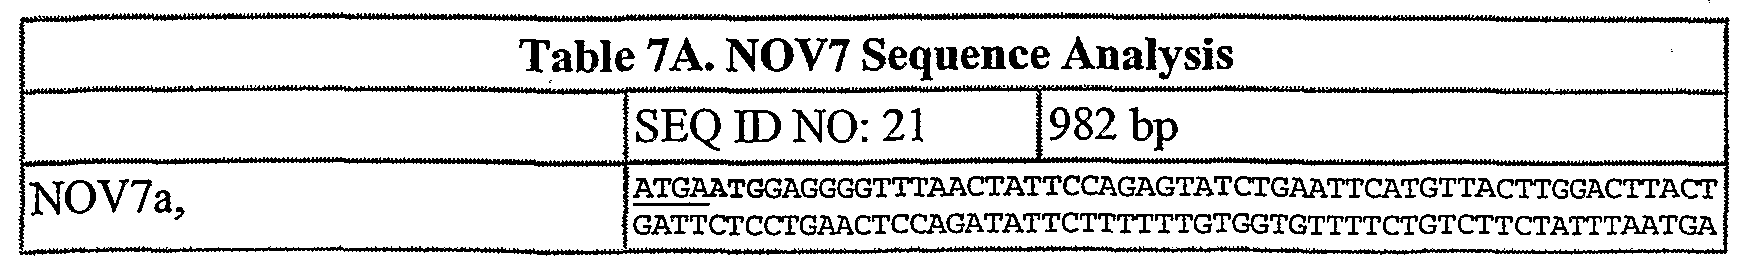 WO A2 Novel proteins and nucleic acids encoding same